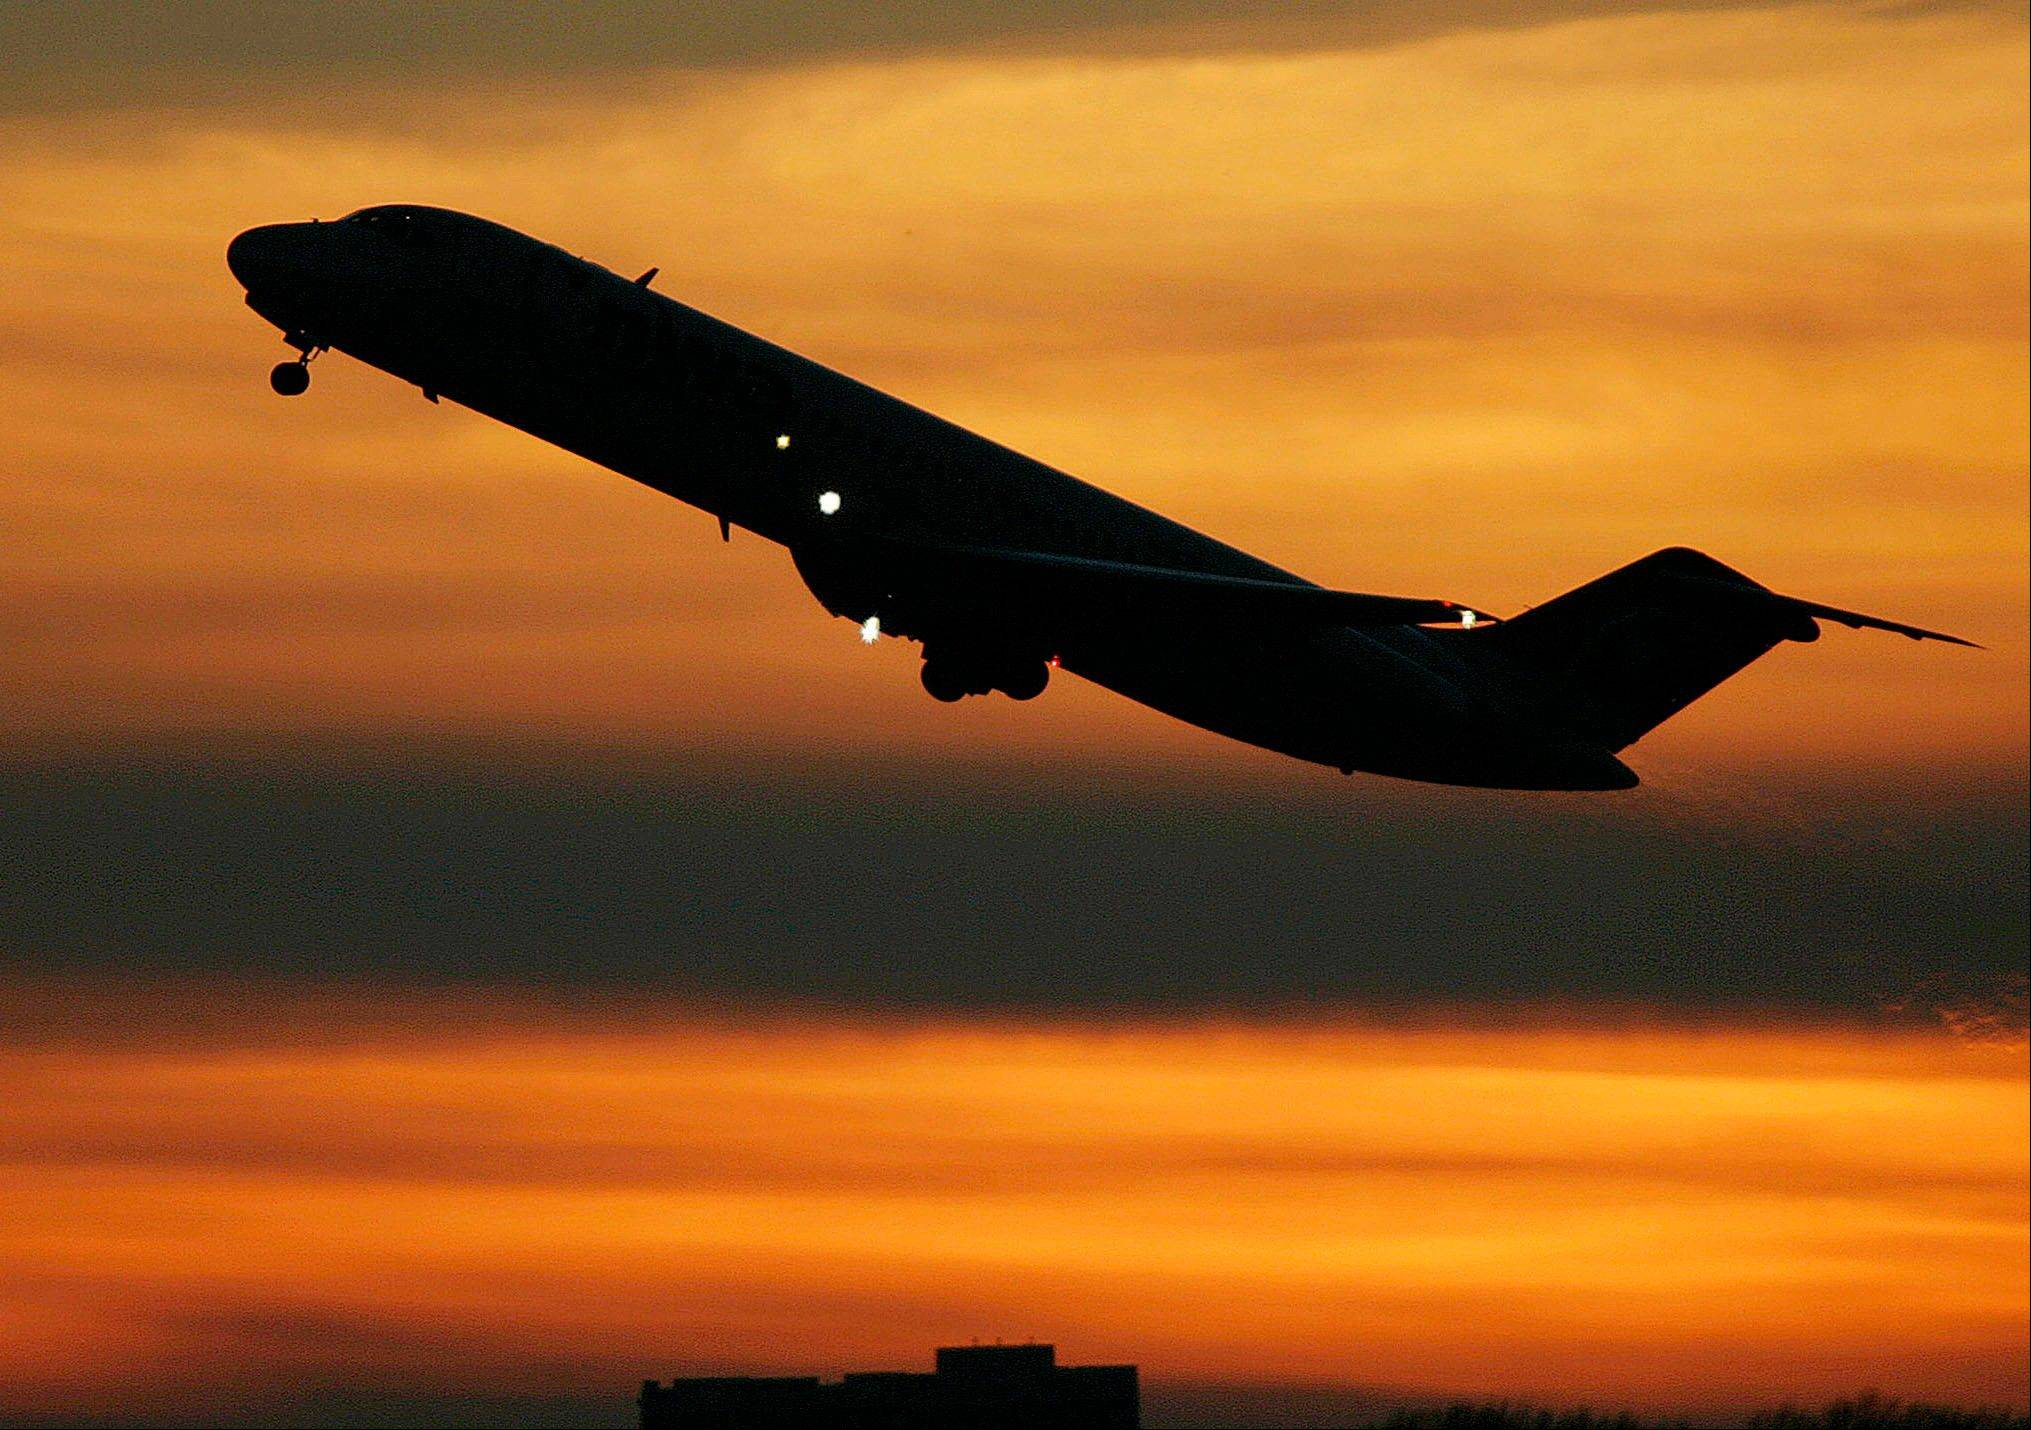 Today, airlines make more than $4 billion a year combined from program partnerships _ topping the reported revenue from baggage fees. There are an estimated 90 million U.S. frequent flier members with 2 trillion unused miles. (AP Photo/Andy King, file)